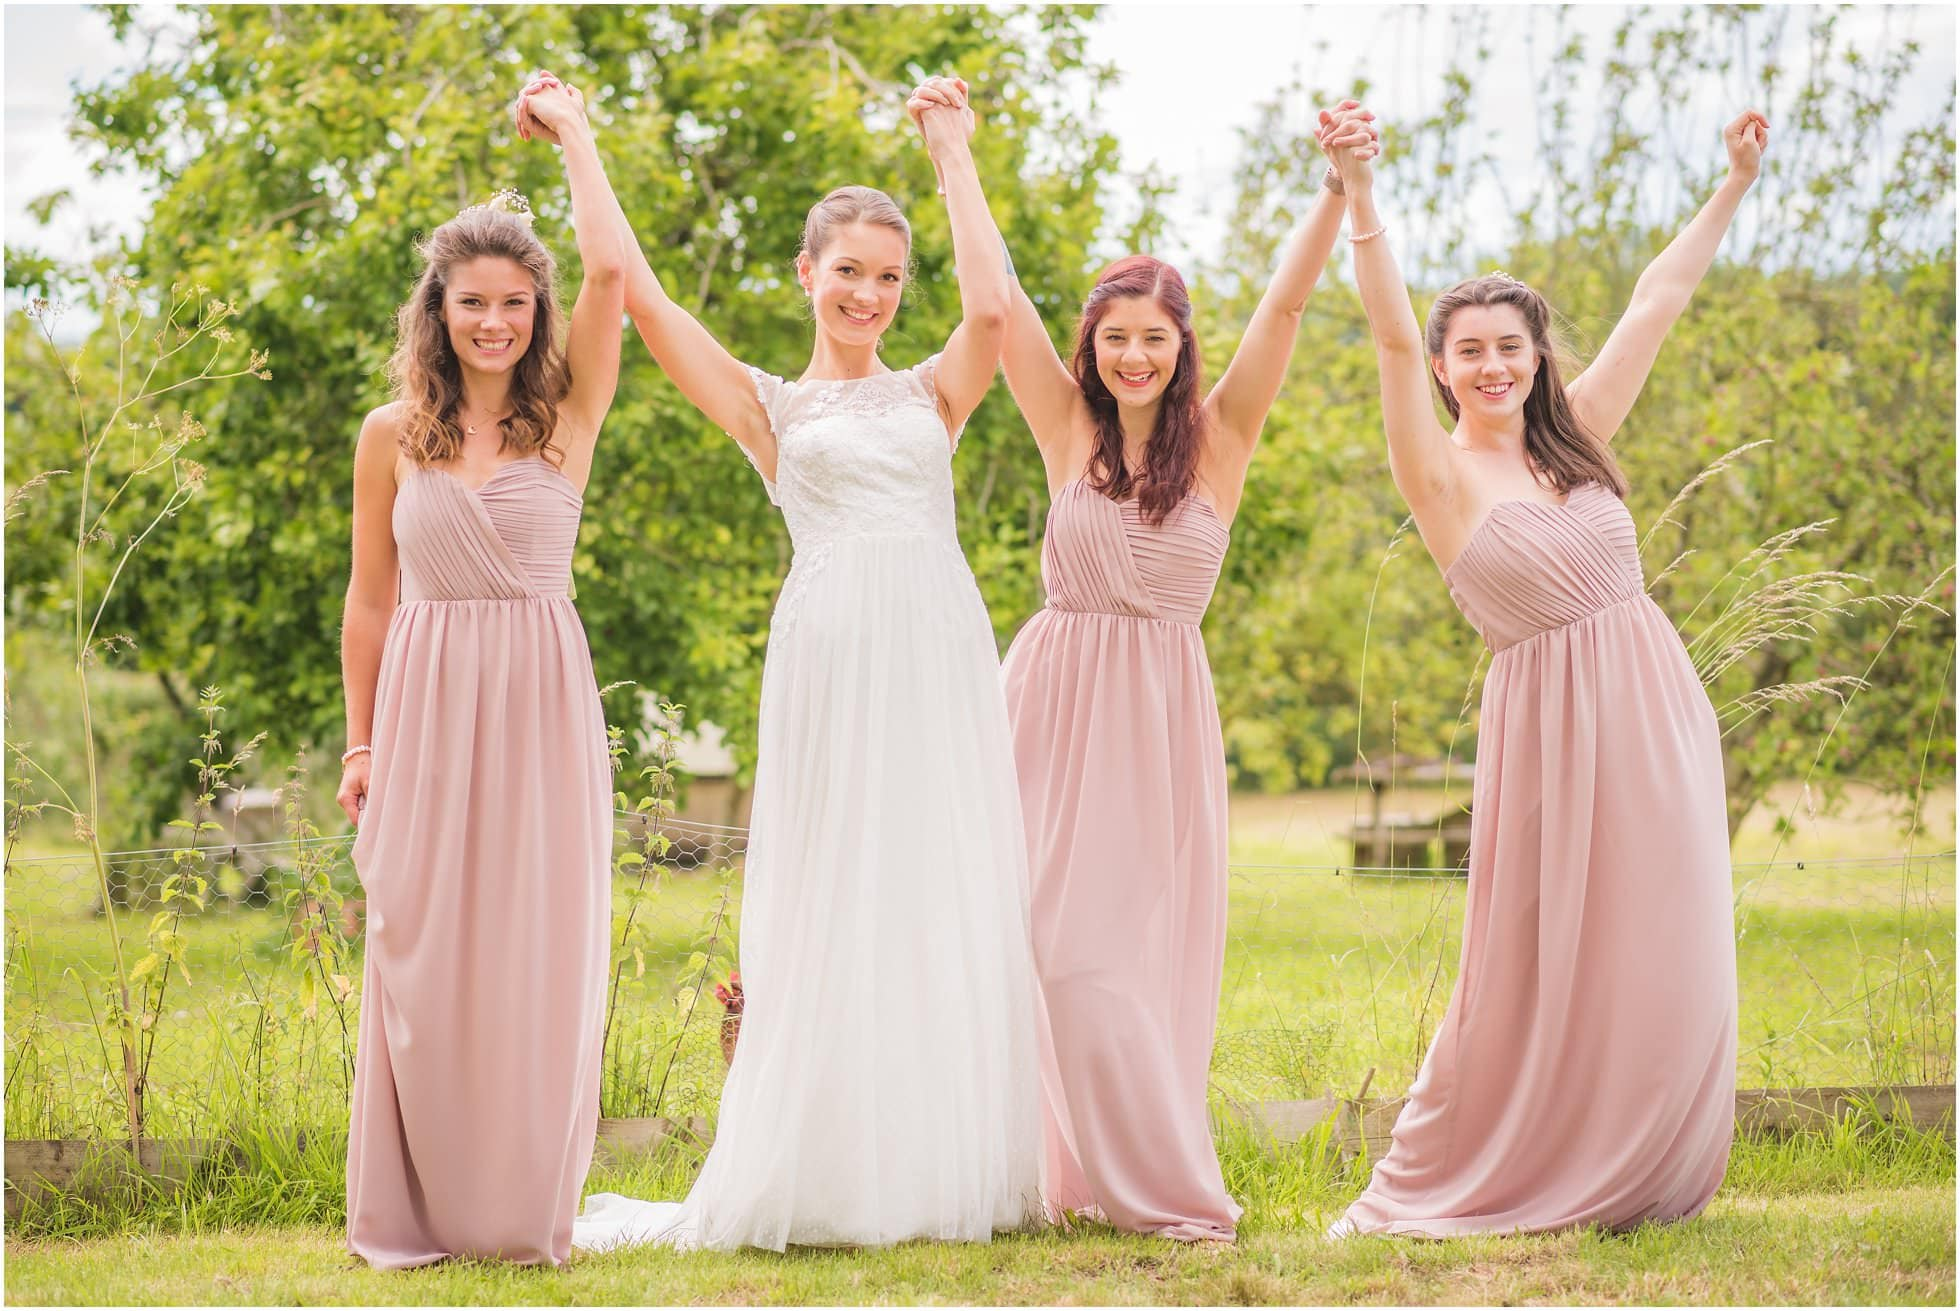 bridesmaids looking cute and playful